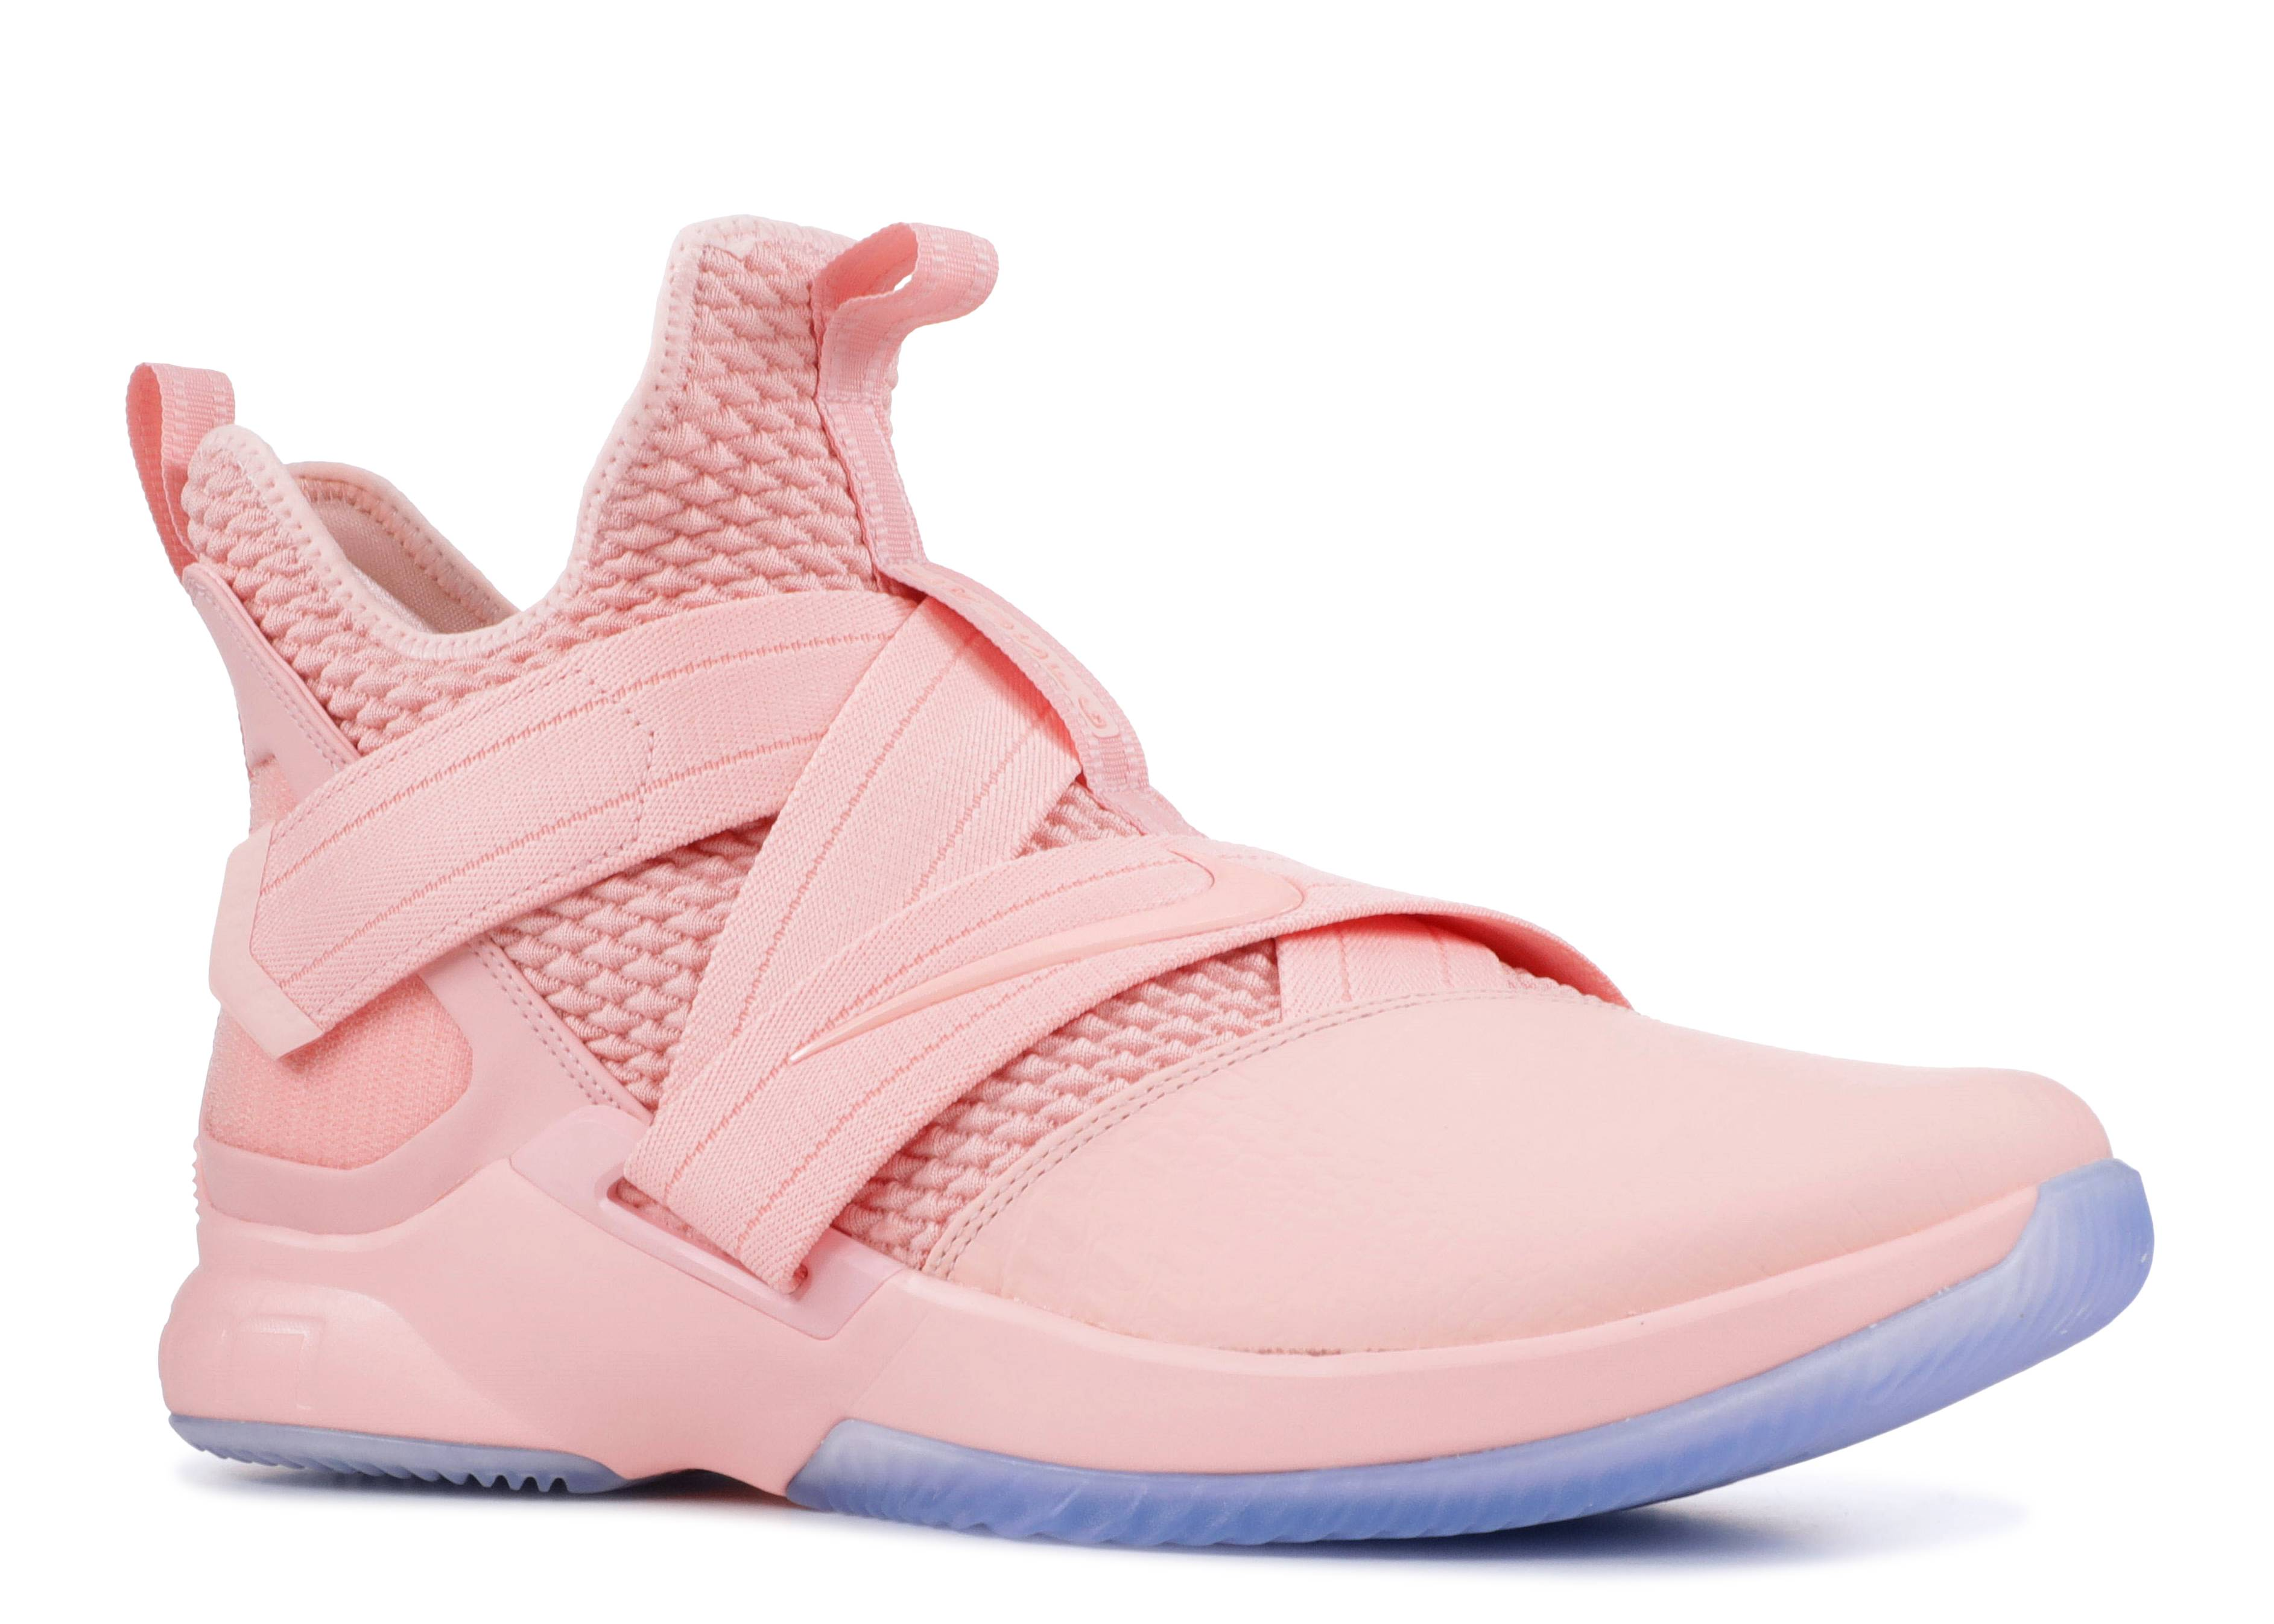 outlet store 1ea27 2b821 Lebron Soldier 12 Sfg